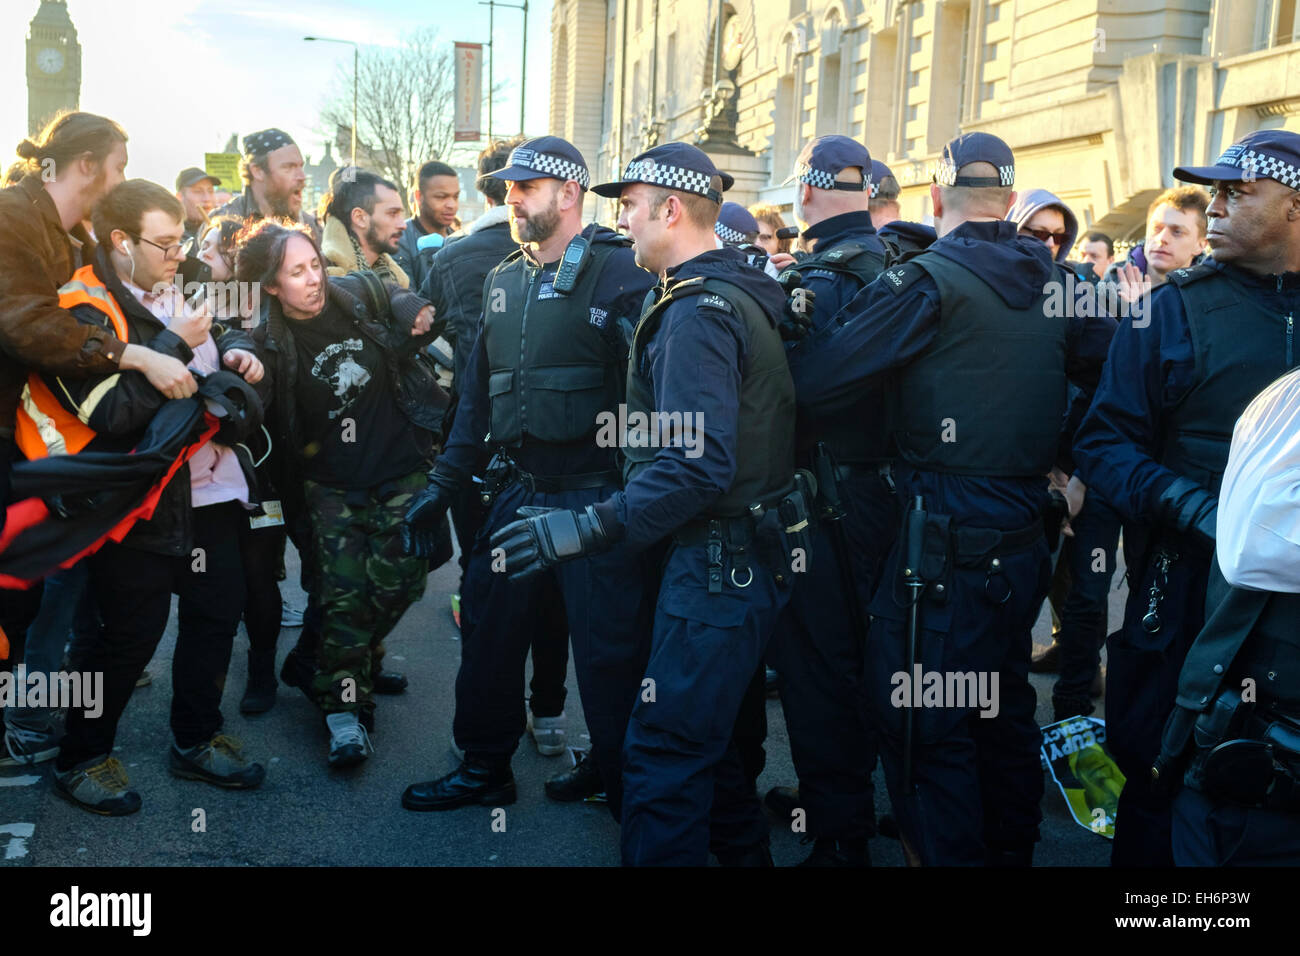 London, UK. 7th March, 2015  'Time for Action' climate change march. . Pictured: Metropolitan police officers - Stock Image